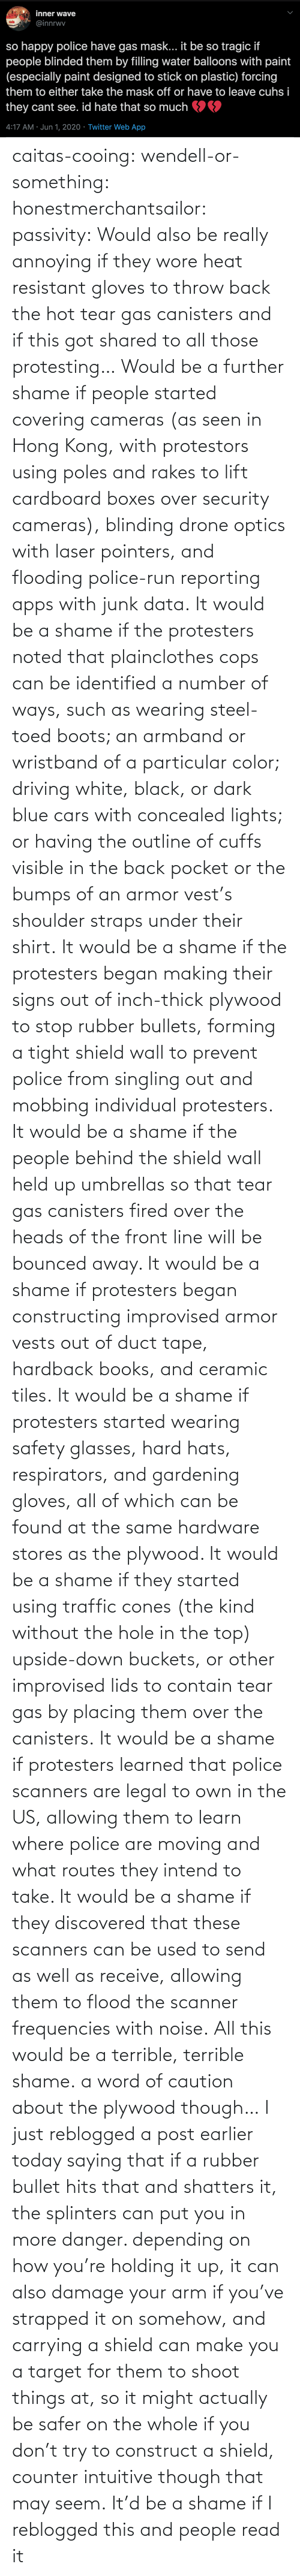 using: caitas-cooing:  wendell-or-something: honestmerchantsailor:  passivity: Would also be really annoying if they wore heat resistant gloves to throw back the hot tear gas canisters and if this got shared to all those protesting… Would be a further shame if people started covering cameras (as seen in Hong Kong, with protestors using poles and rakes to lift cardboard boxes over security cameras), blinding drone optics with laser pointers, and flooding police-run reporting apps with junk data. It would be a shame if the protesters noted that plainclothes cops can be identified a number of ways, such as wearing steel-toed boots; an armband or wristband of a particular color; driving white, black, or dark blue cars with concealed lights; or having the outline of cuffs visible in the back pocket or the bumps of an armor vest's shoulder straps under their shirt. It would be a shame if the protesters began making their signs out of inch-thick plywood to stop rubber bullets, forming a tight shield wall to prevent police from singling out and mobbing individual protesters. It would be a shame if the people behind the shield wall held up umbrellas so that tear gas canisters fired over the heads of the front line will be bounced away. It would be a shame if protesters began constructing improvised armor vests out of duct tape, hardback books, and ceramic tiles. It would be a shame if protesters started wearing safety glasses, hard hats, respirators, and gardening gloves, all of which can be found at the same hardware stores as the plywood. It would be a shame if they started using traffic cones (the kind without the hole in the top) upside-down buckets, or other improvised lids to contain tear gas by placing them over the canisters. It would be a shame if protesters learned that police scanners are legal to own in the US, allowing them to learn where police are moving and what routes they intend to take. It would be a shame if they discovered that these scanners can be used to send as well as receive, allowing them to flood the scanner frequencies with noise. All this would be a terrible, terrible shame.    a word of caution about the plywood though… I just reblogged a post earlier today saying that if a rubber bullet hits that and shatters it, the splinters can put you in more danger. depending on how you're holding it up, it can also damage your arm if you've strapped it on somehow, and carrying a shield can make you a target for them to shoot things at, so it might actually be safer on the whole if you don't try to construct a shield, counter intuitive though that may seem.    It'd be a shame if I reblogged this and people read it